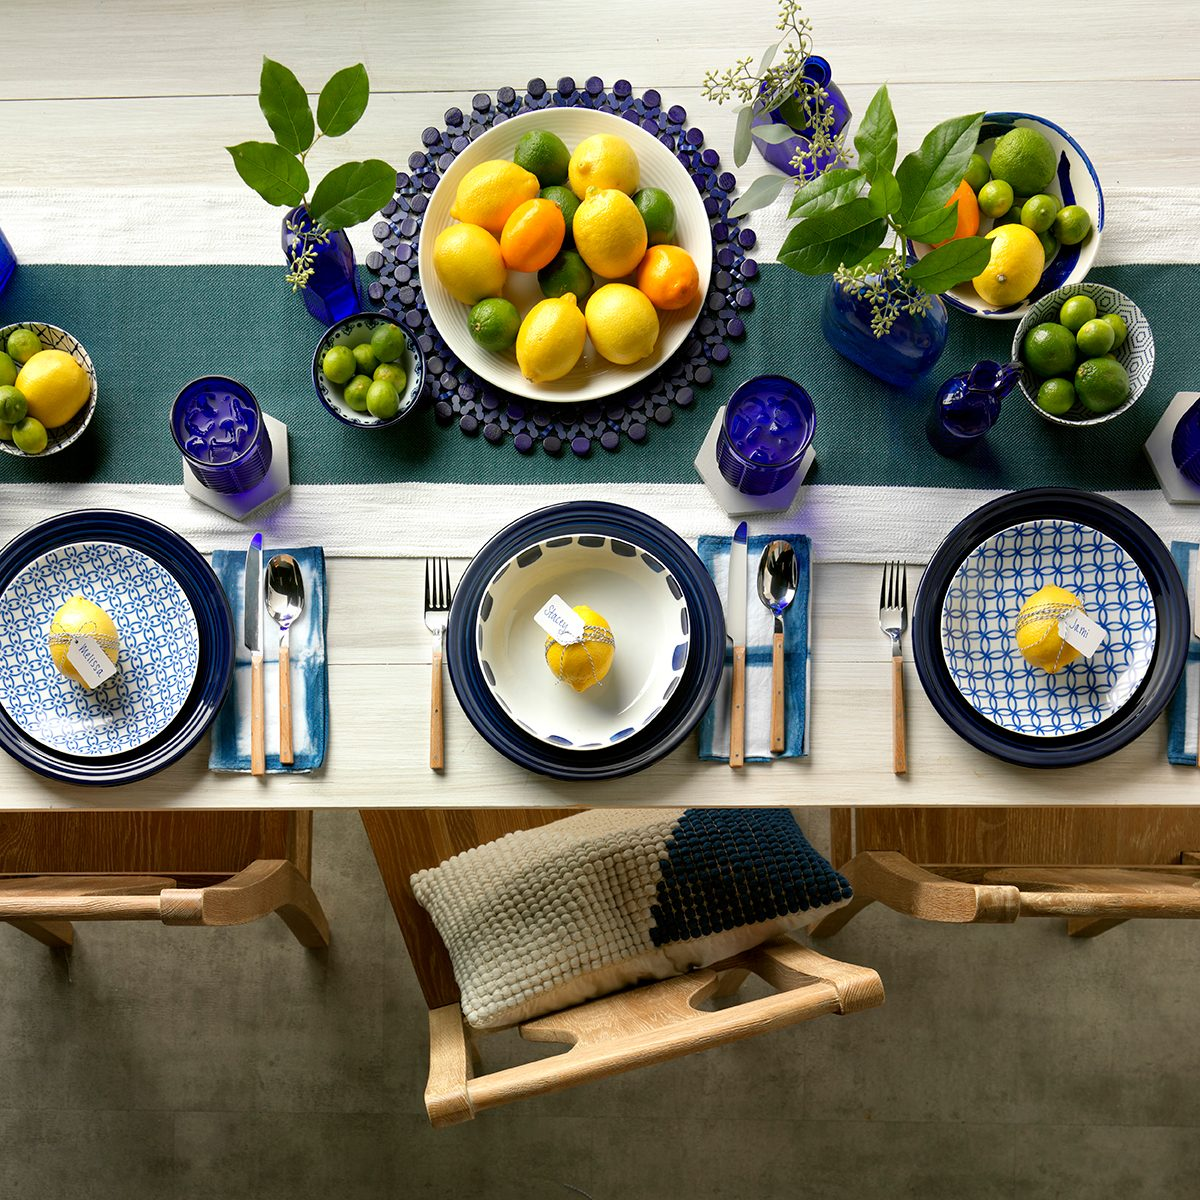 bright and citrus-y table display for spring